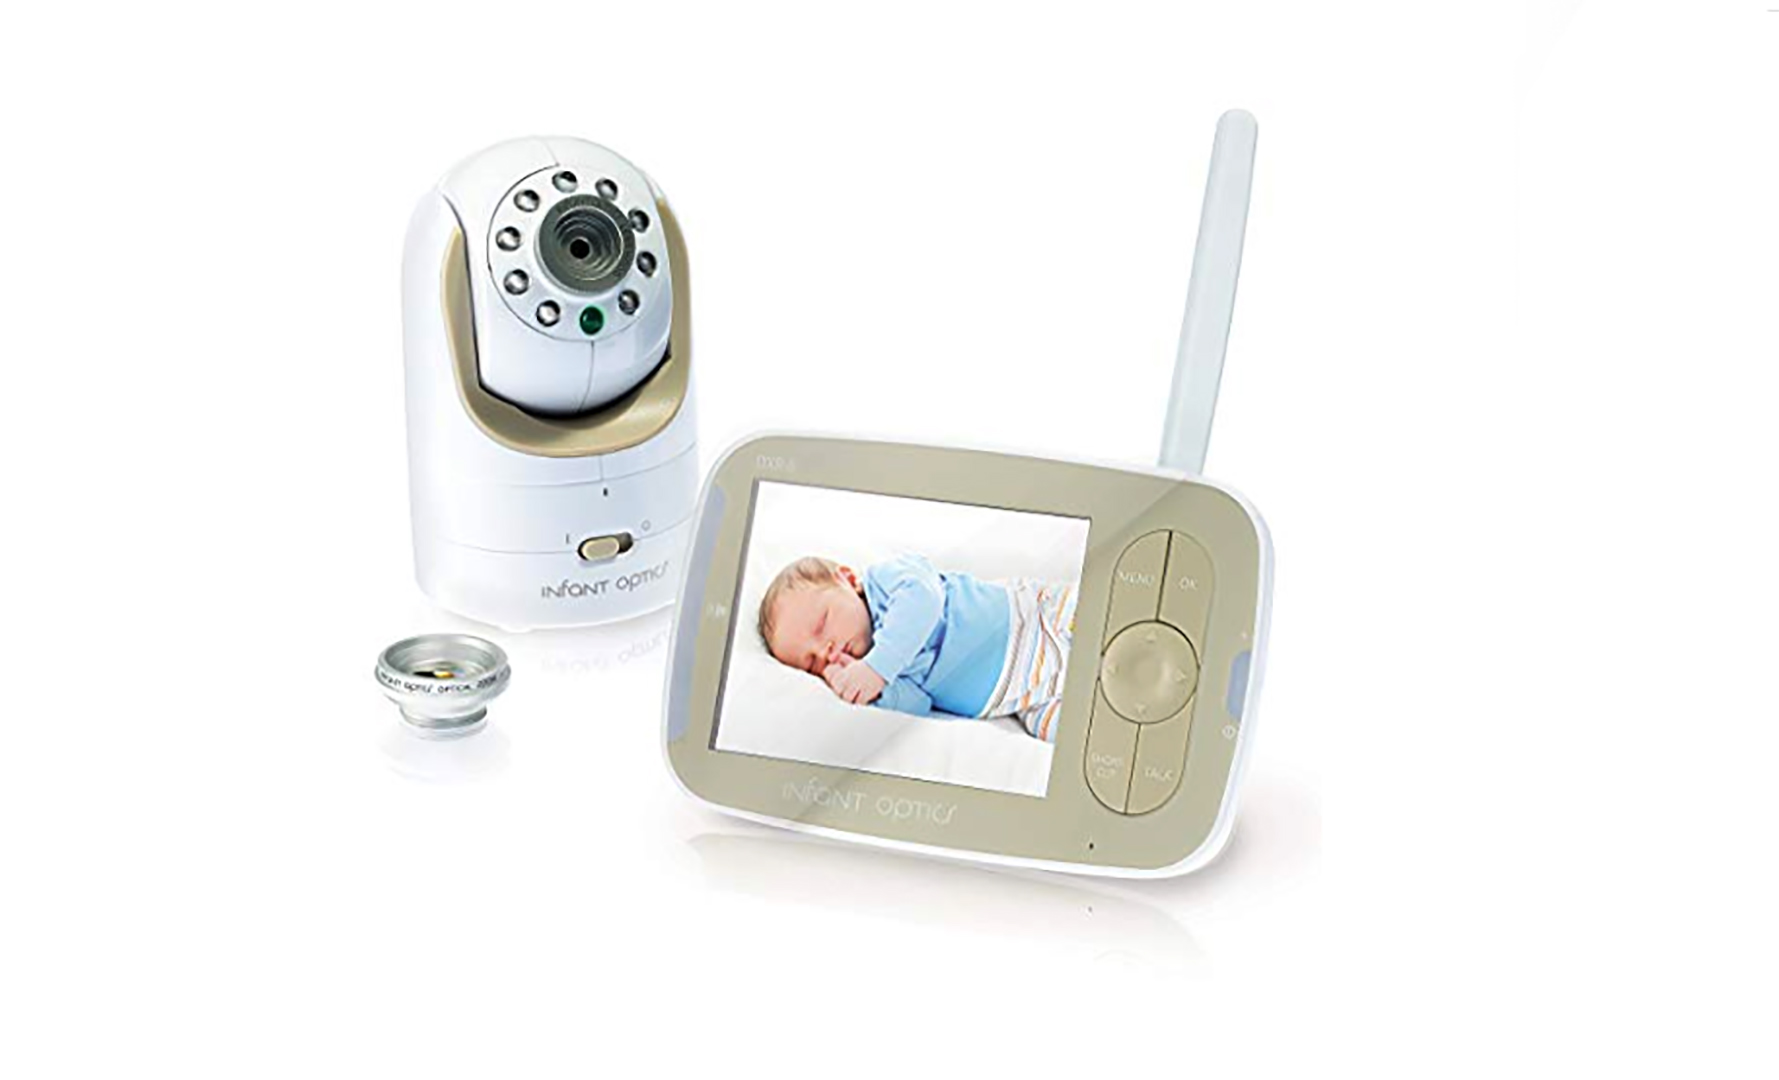 Infant Optics DXR Video Baby Monitor